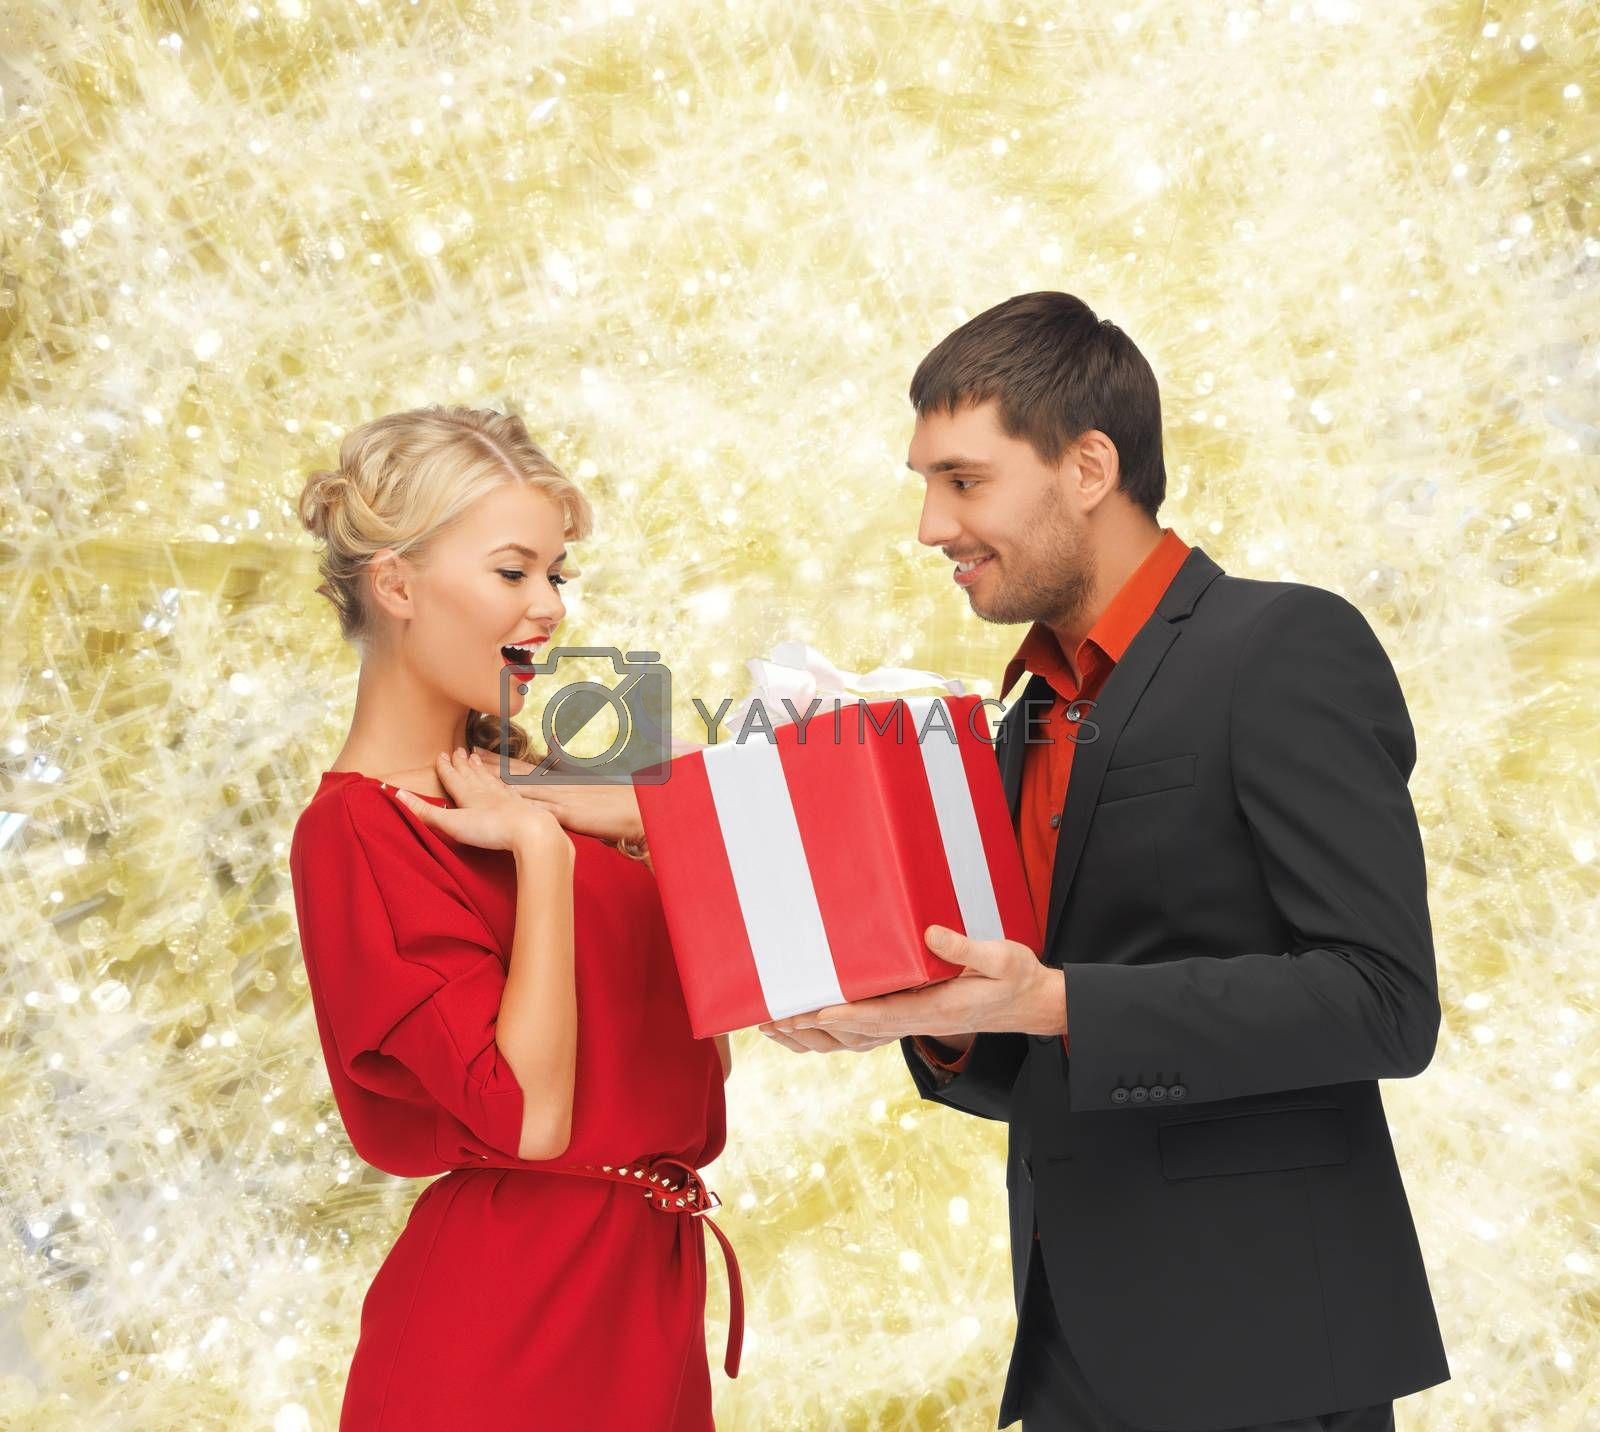 christmas, holidays, valentine's day, celebration and people concept - smiling man and woman with present over yellow lights background